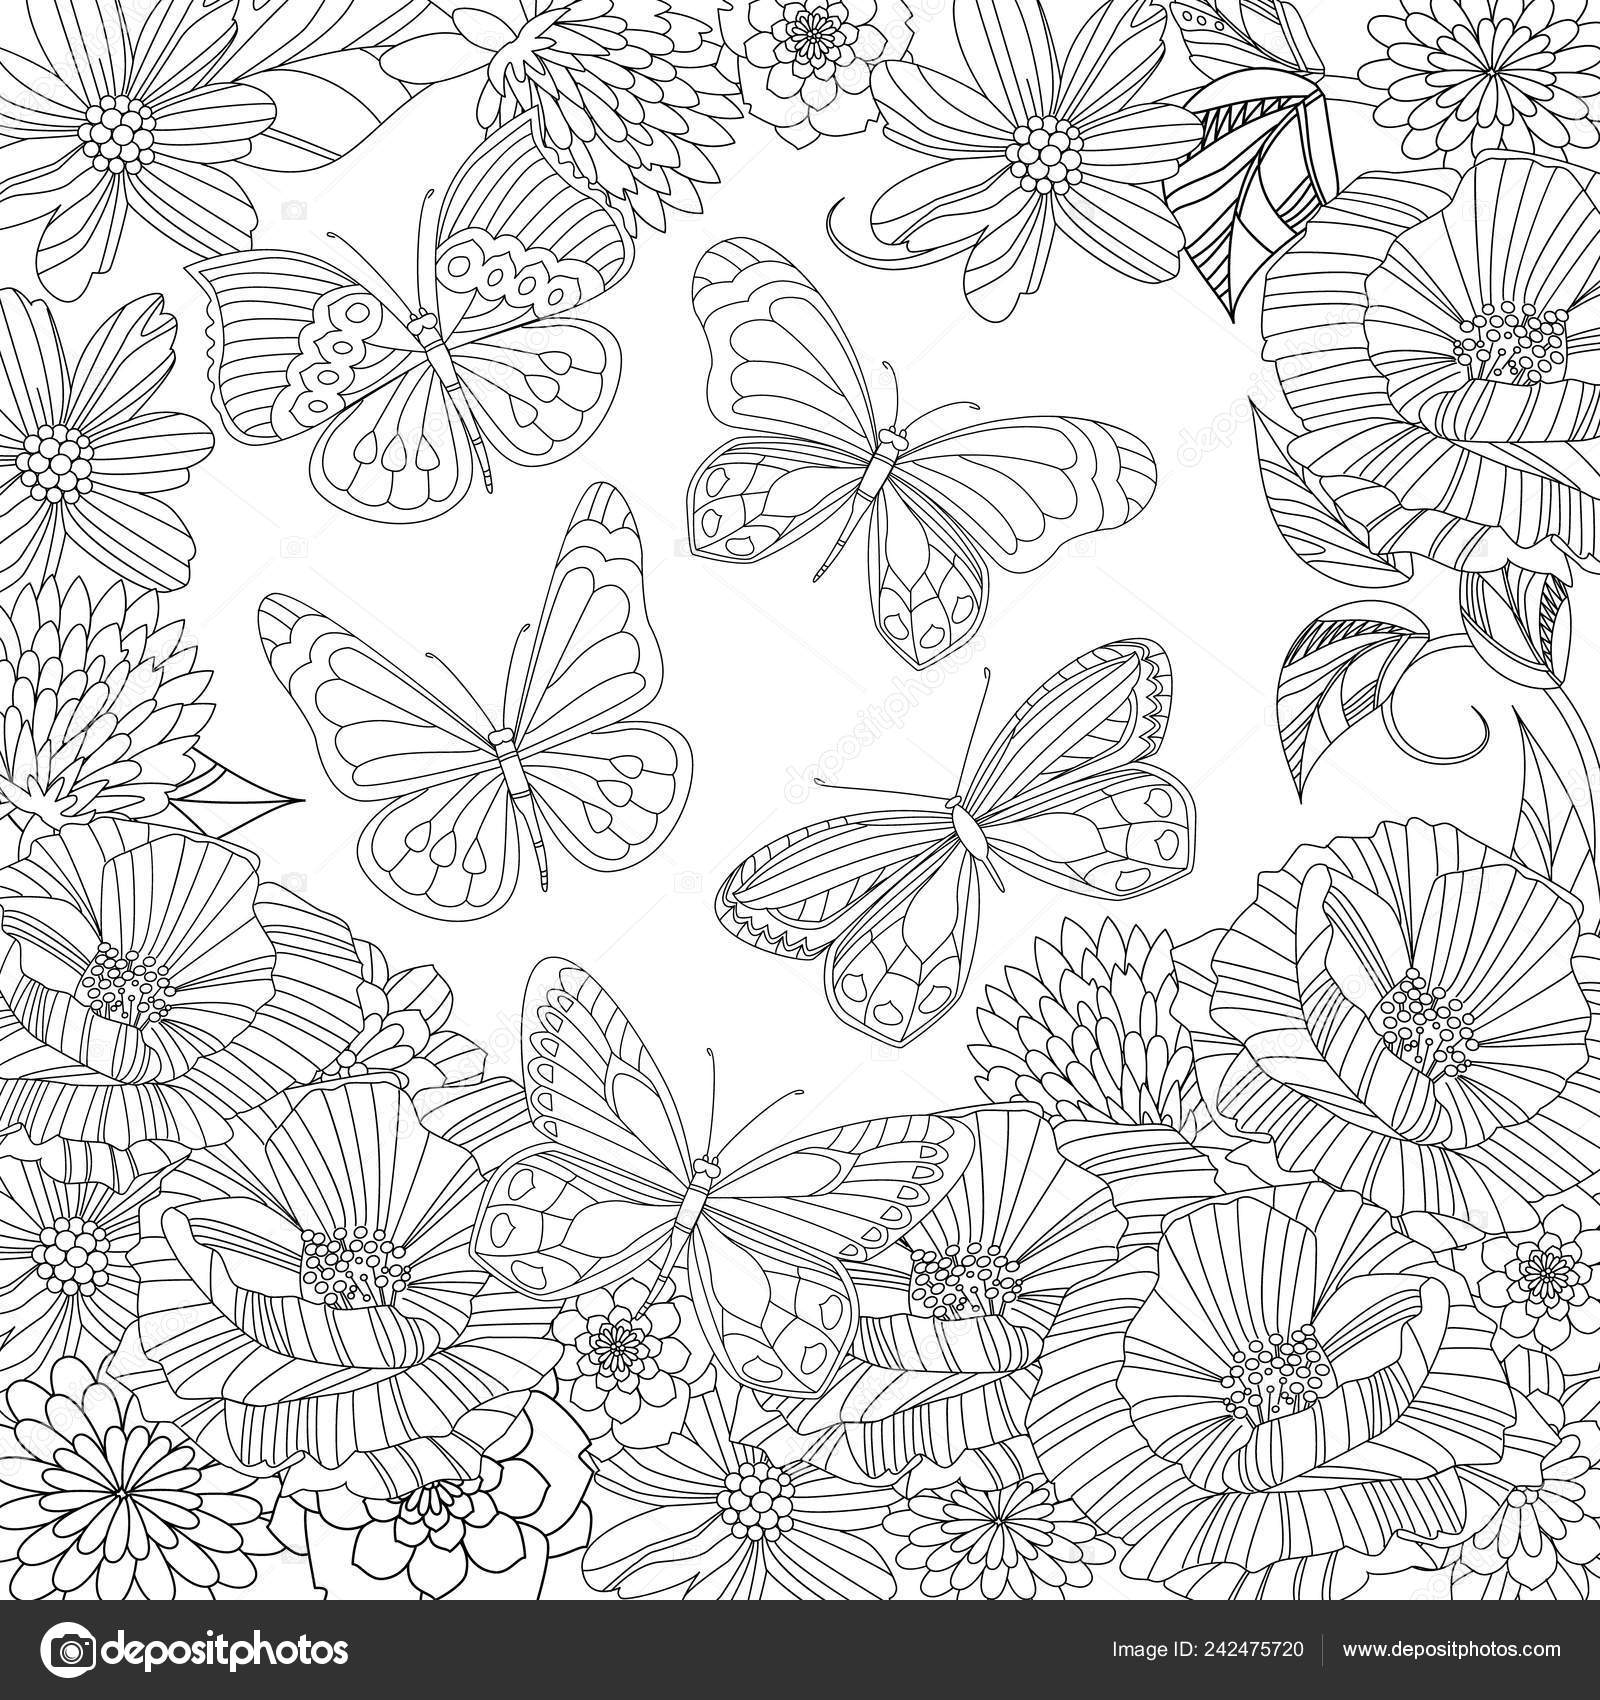 Flying Butterflies Blossom Garden Your Coloring Page Stock